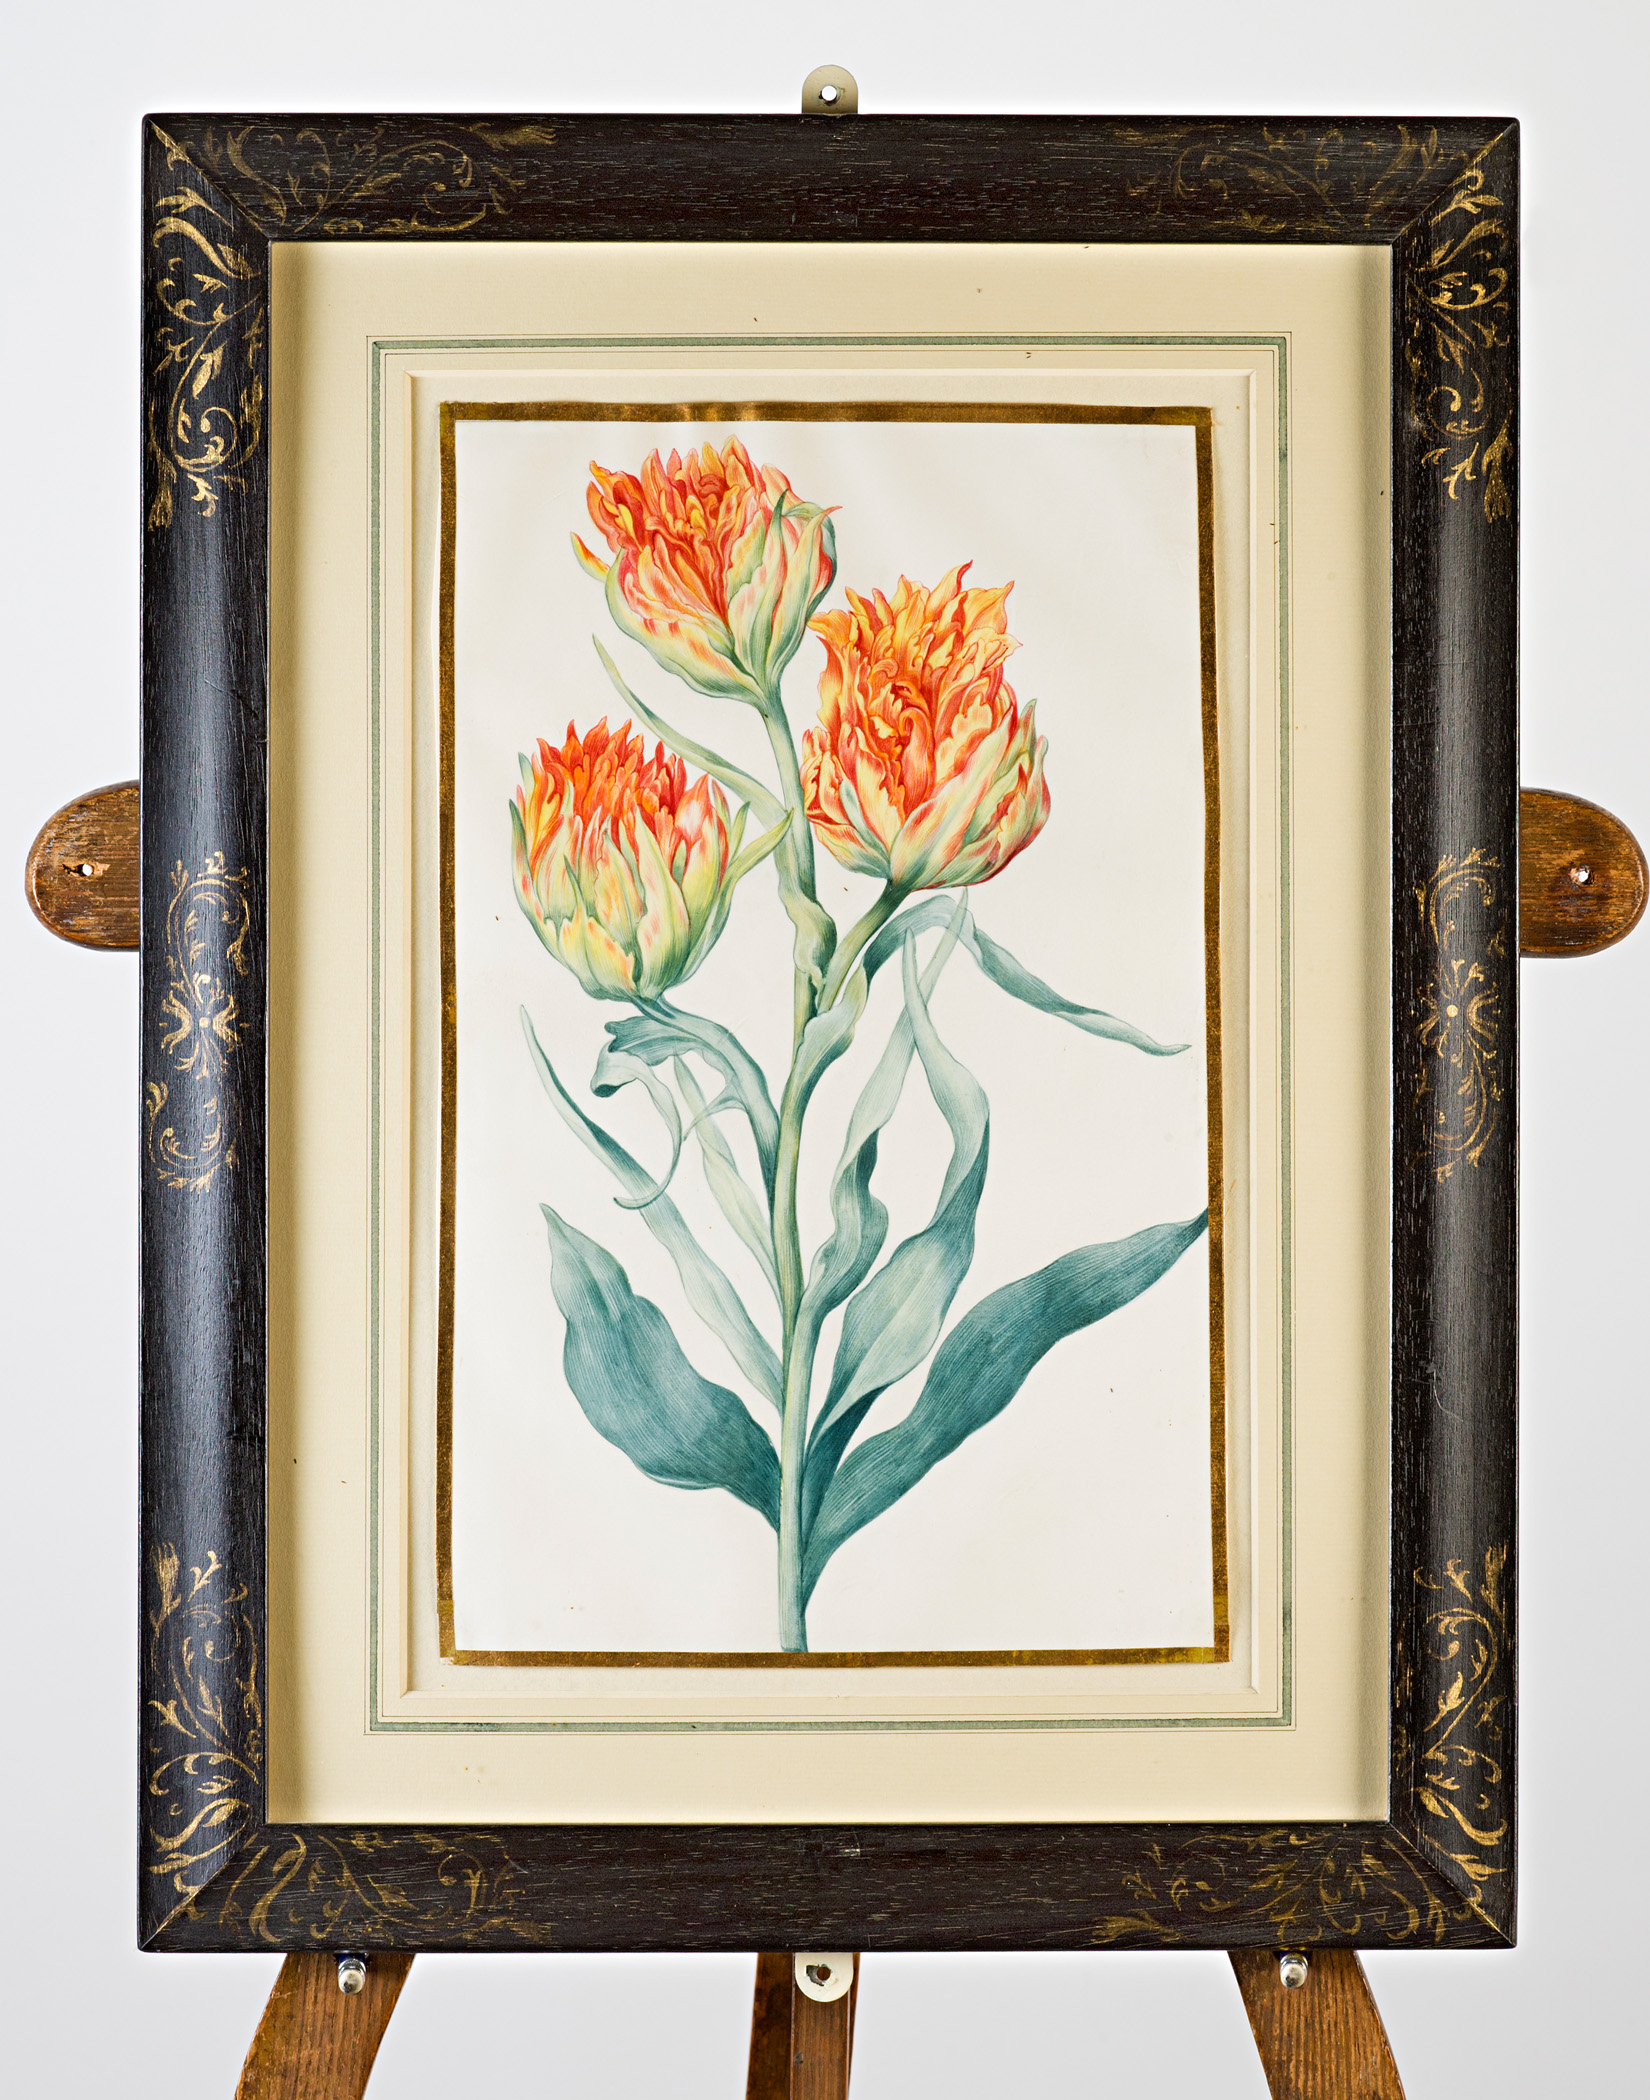 Three-headed orange and yellow tulip, Attributed to Claude Aubriet (c.1665-1742).